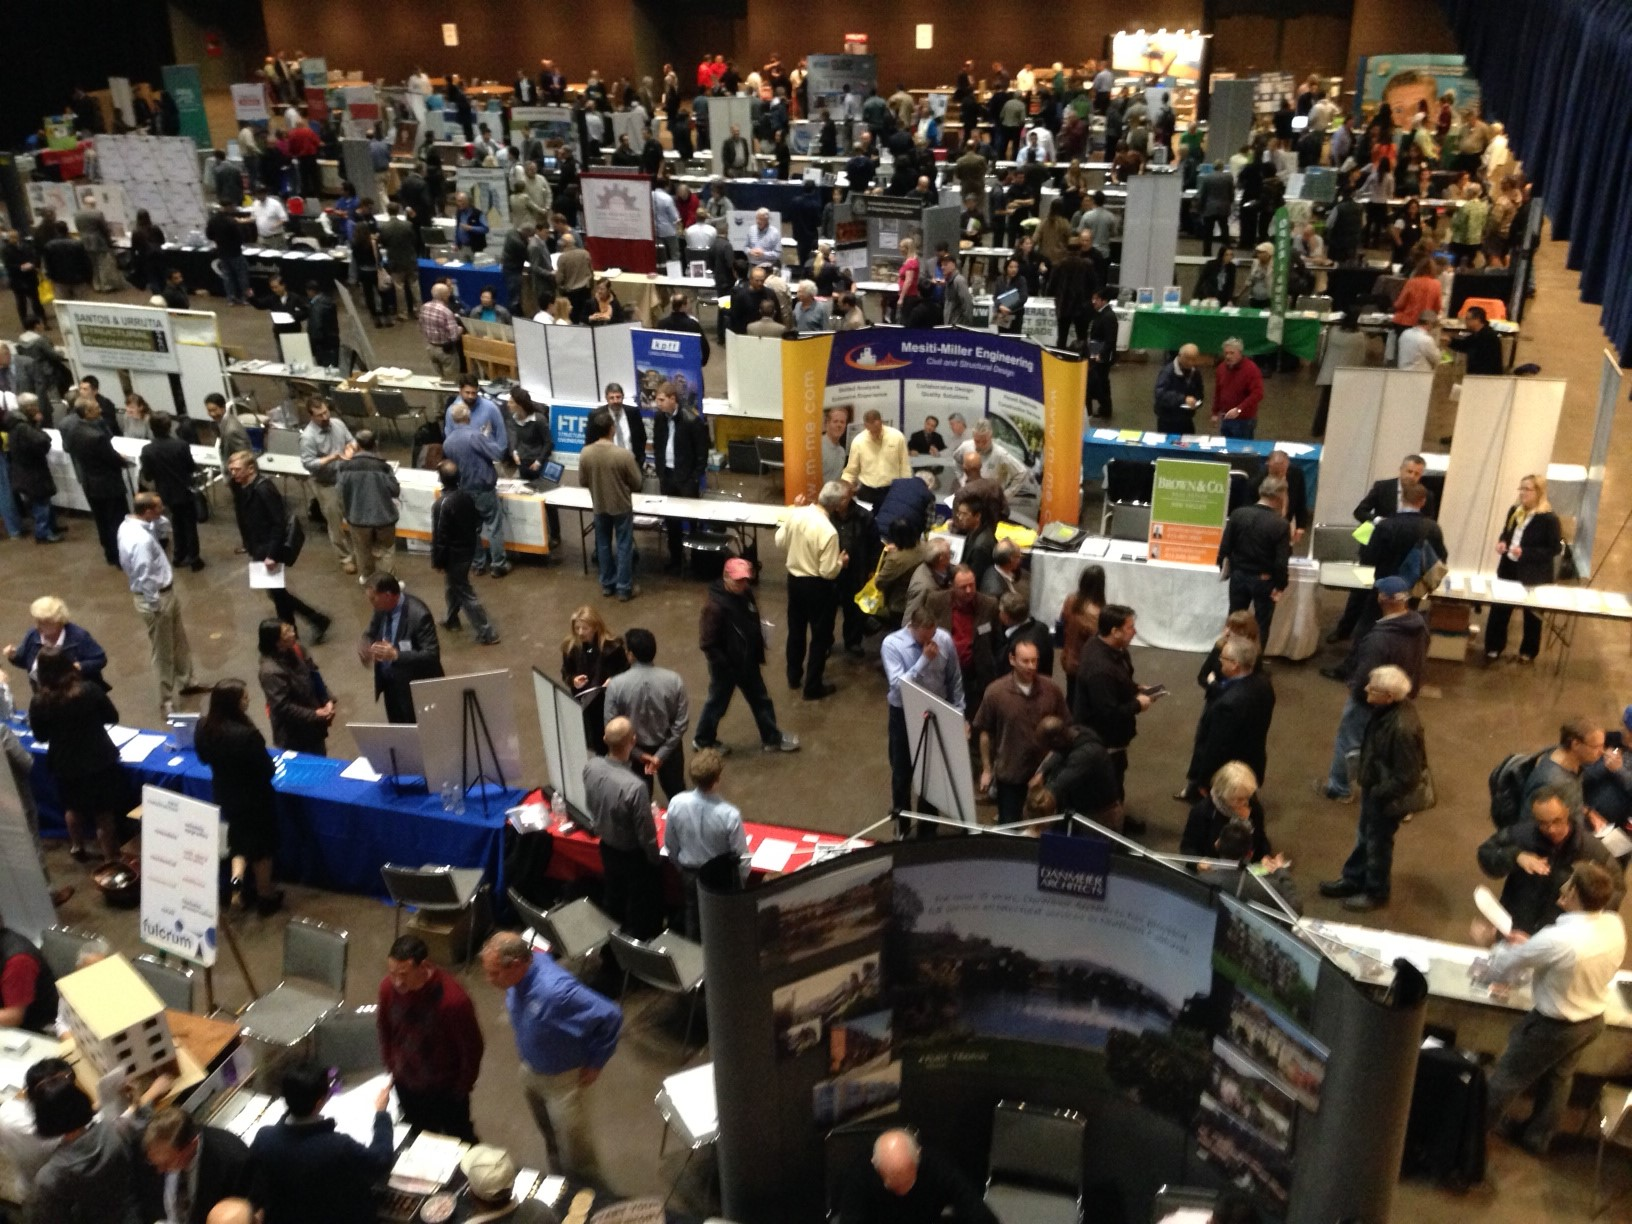 Earthquake Retrofit Fair